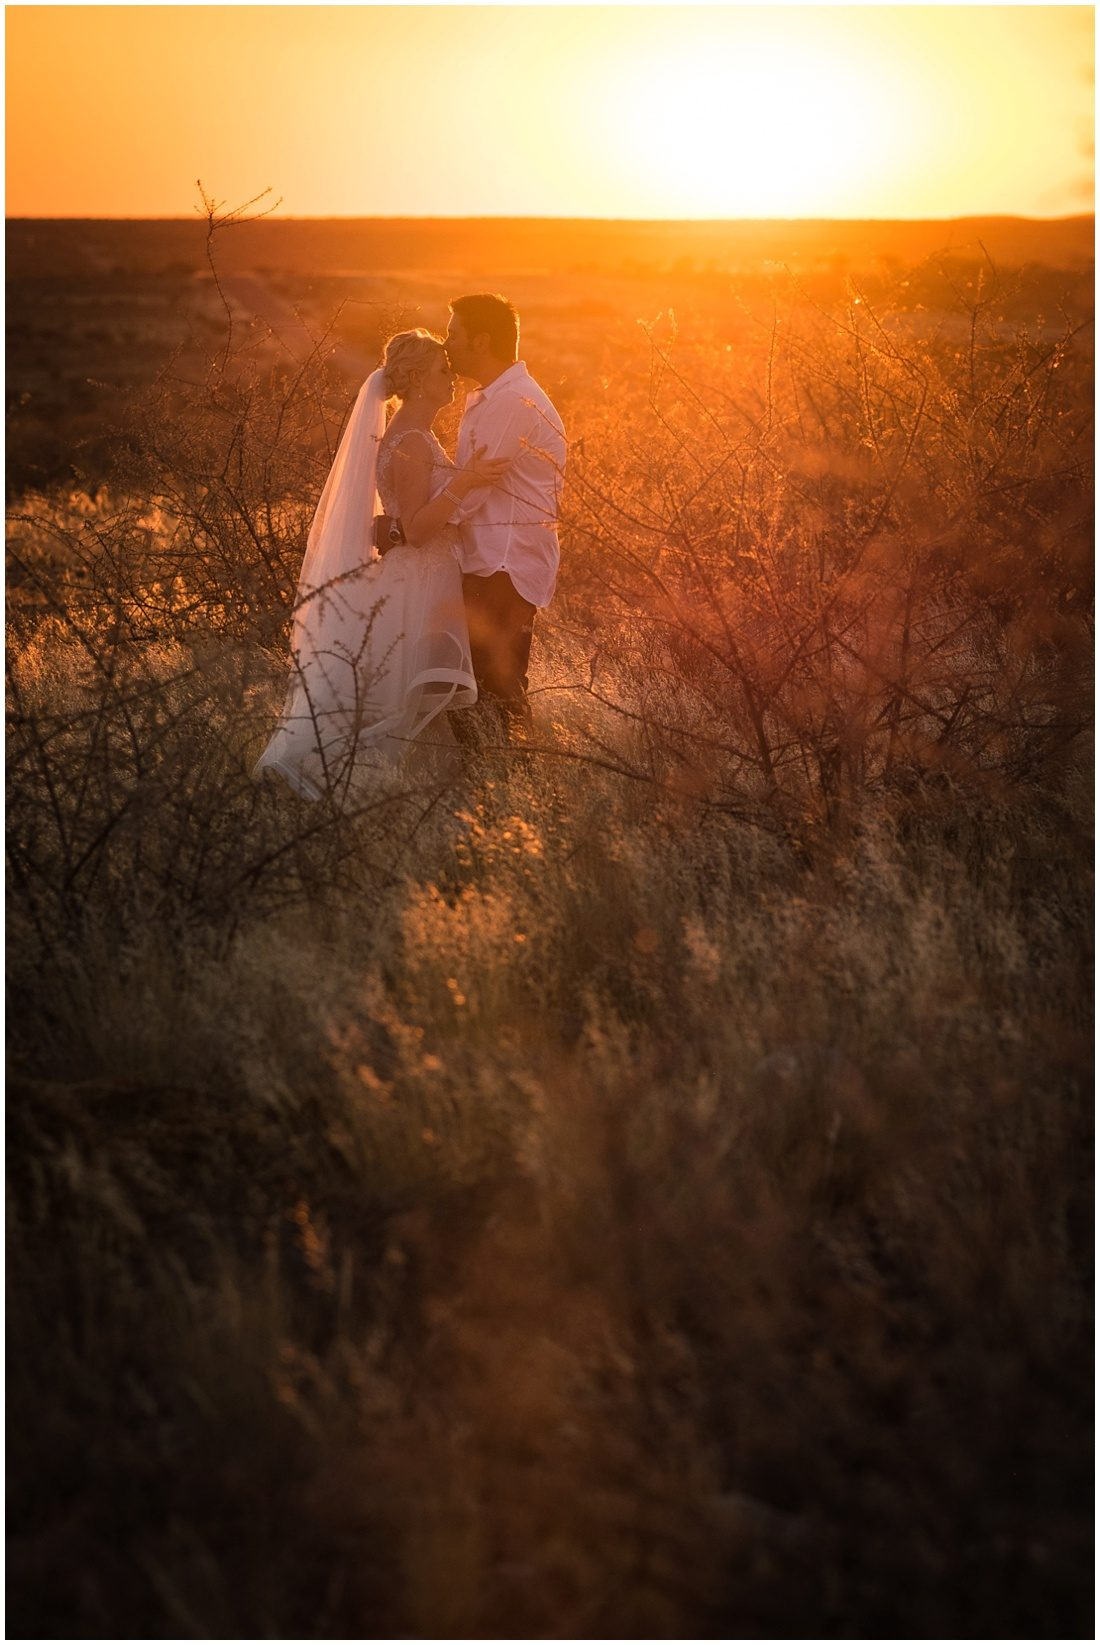 namibian wedding marienthal - rory & christa bride & groom marienthal-21